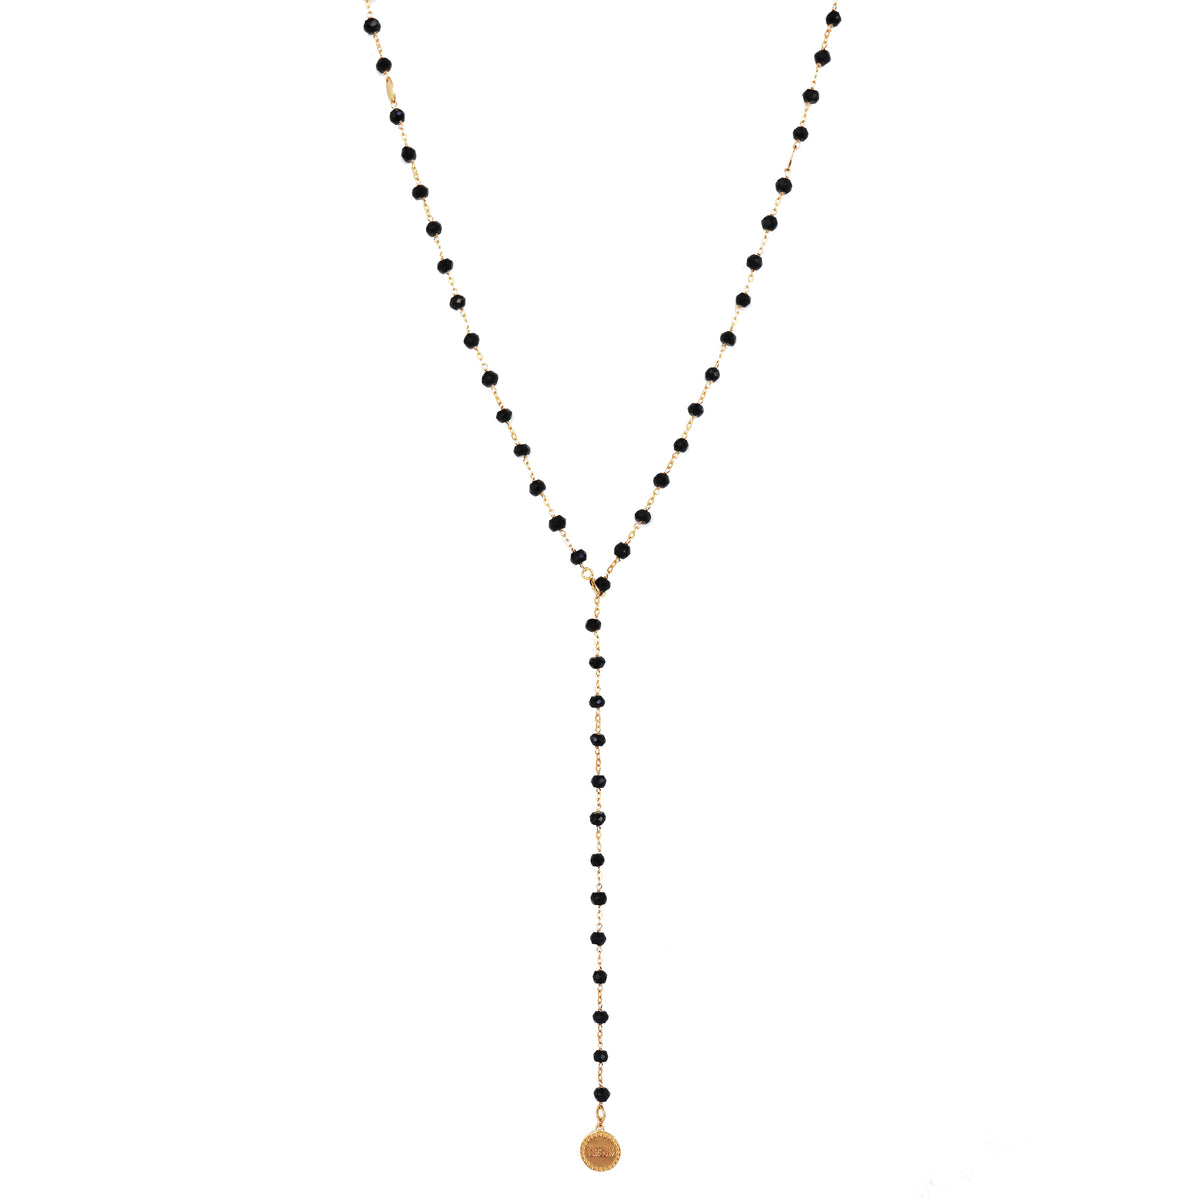 ICONIC LONG BEADED NECKLACE - BLACK ONYX & GOLD 34""